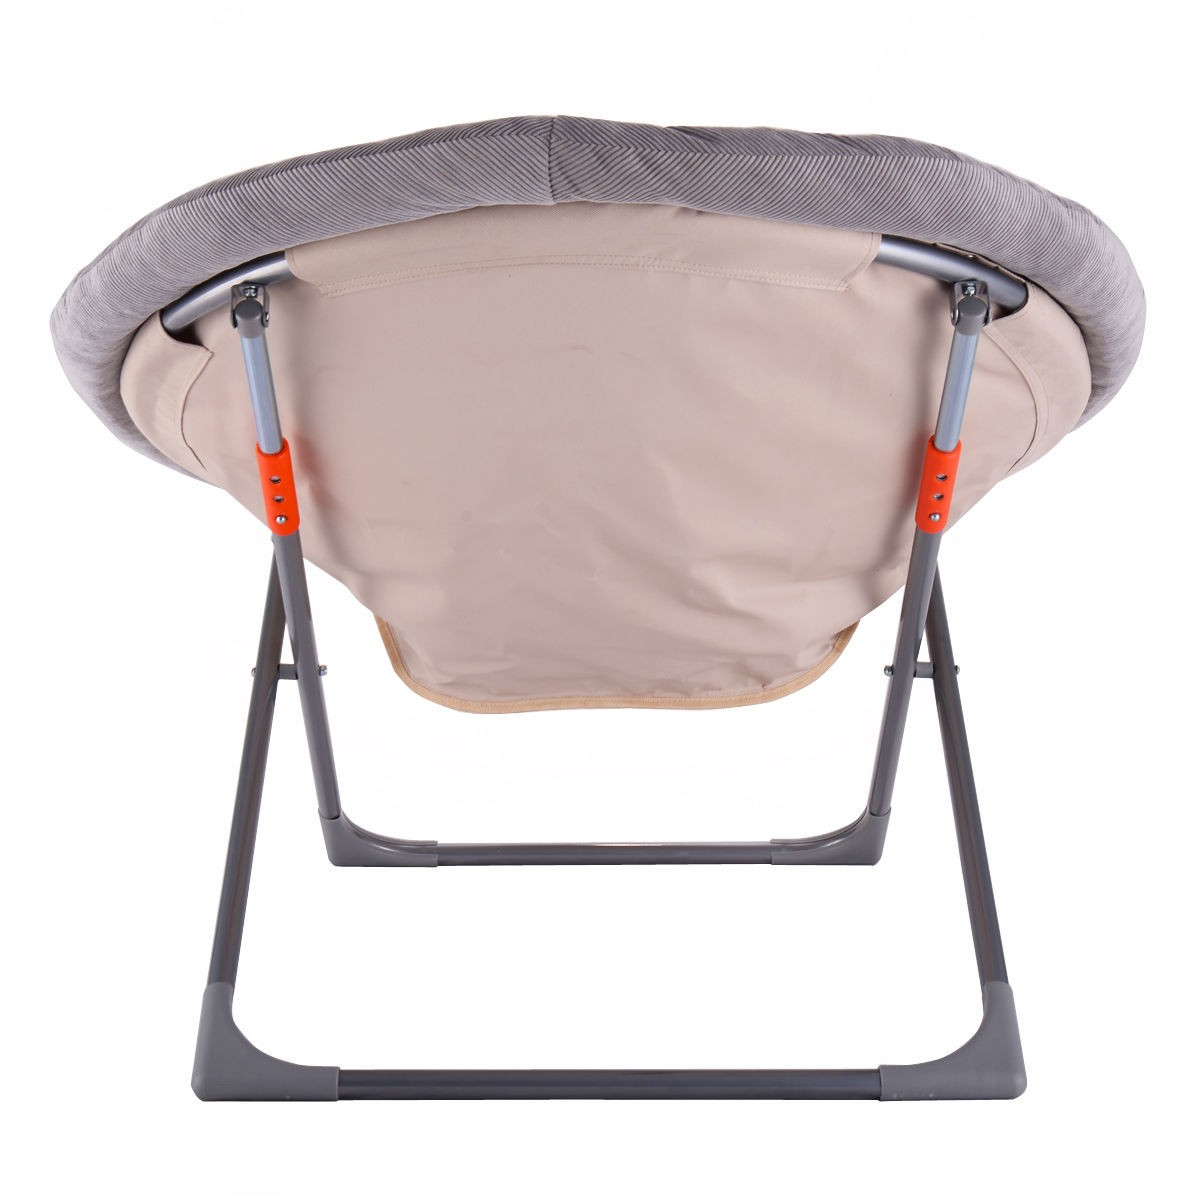 Oversized Folding Saucer Moon Chair Corduroy Round Seat Living Room US